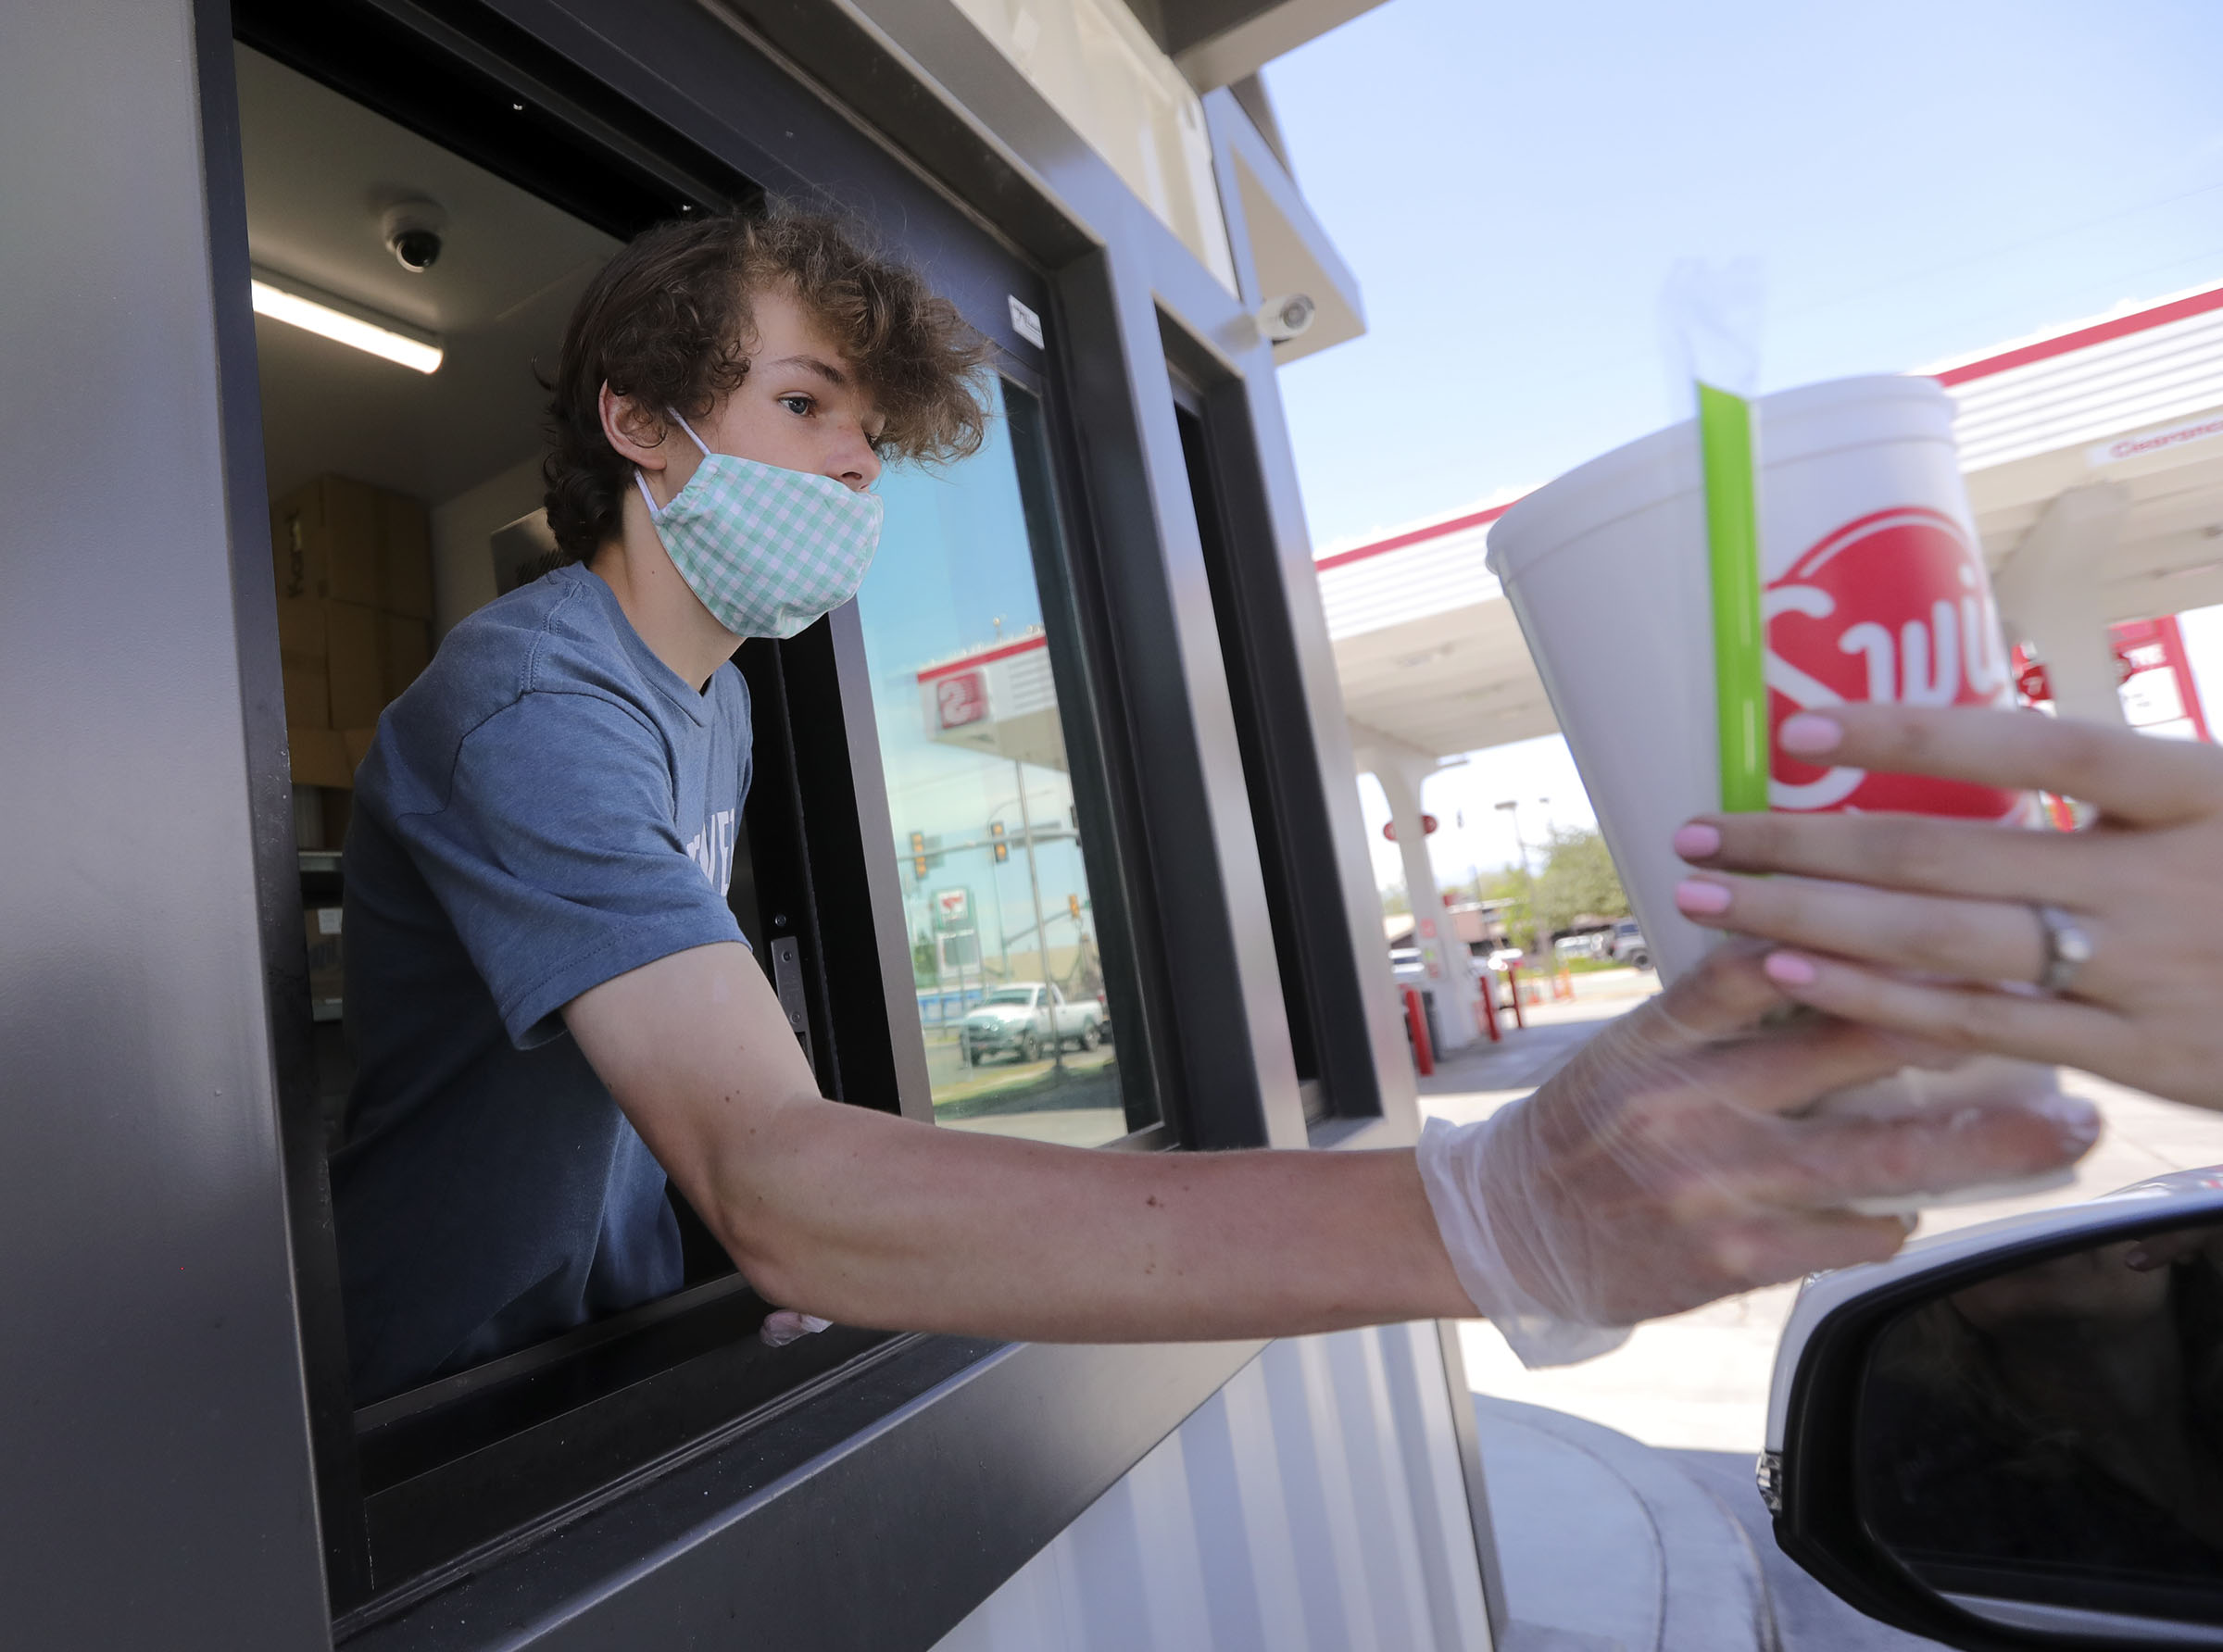 Henry Randle hands out beverages at Swig's drive-thru window in Millcreek on Wednesday, June 3, 2020.